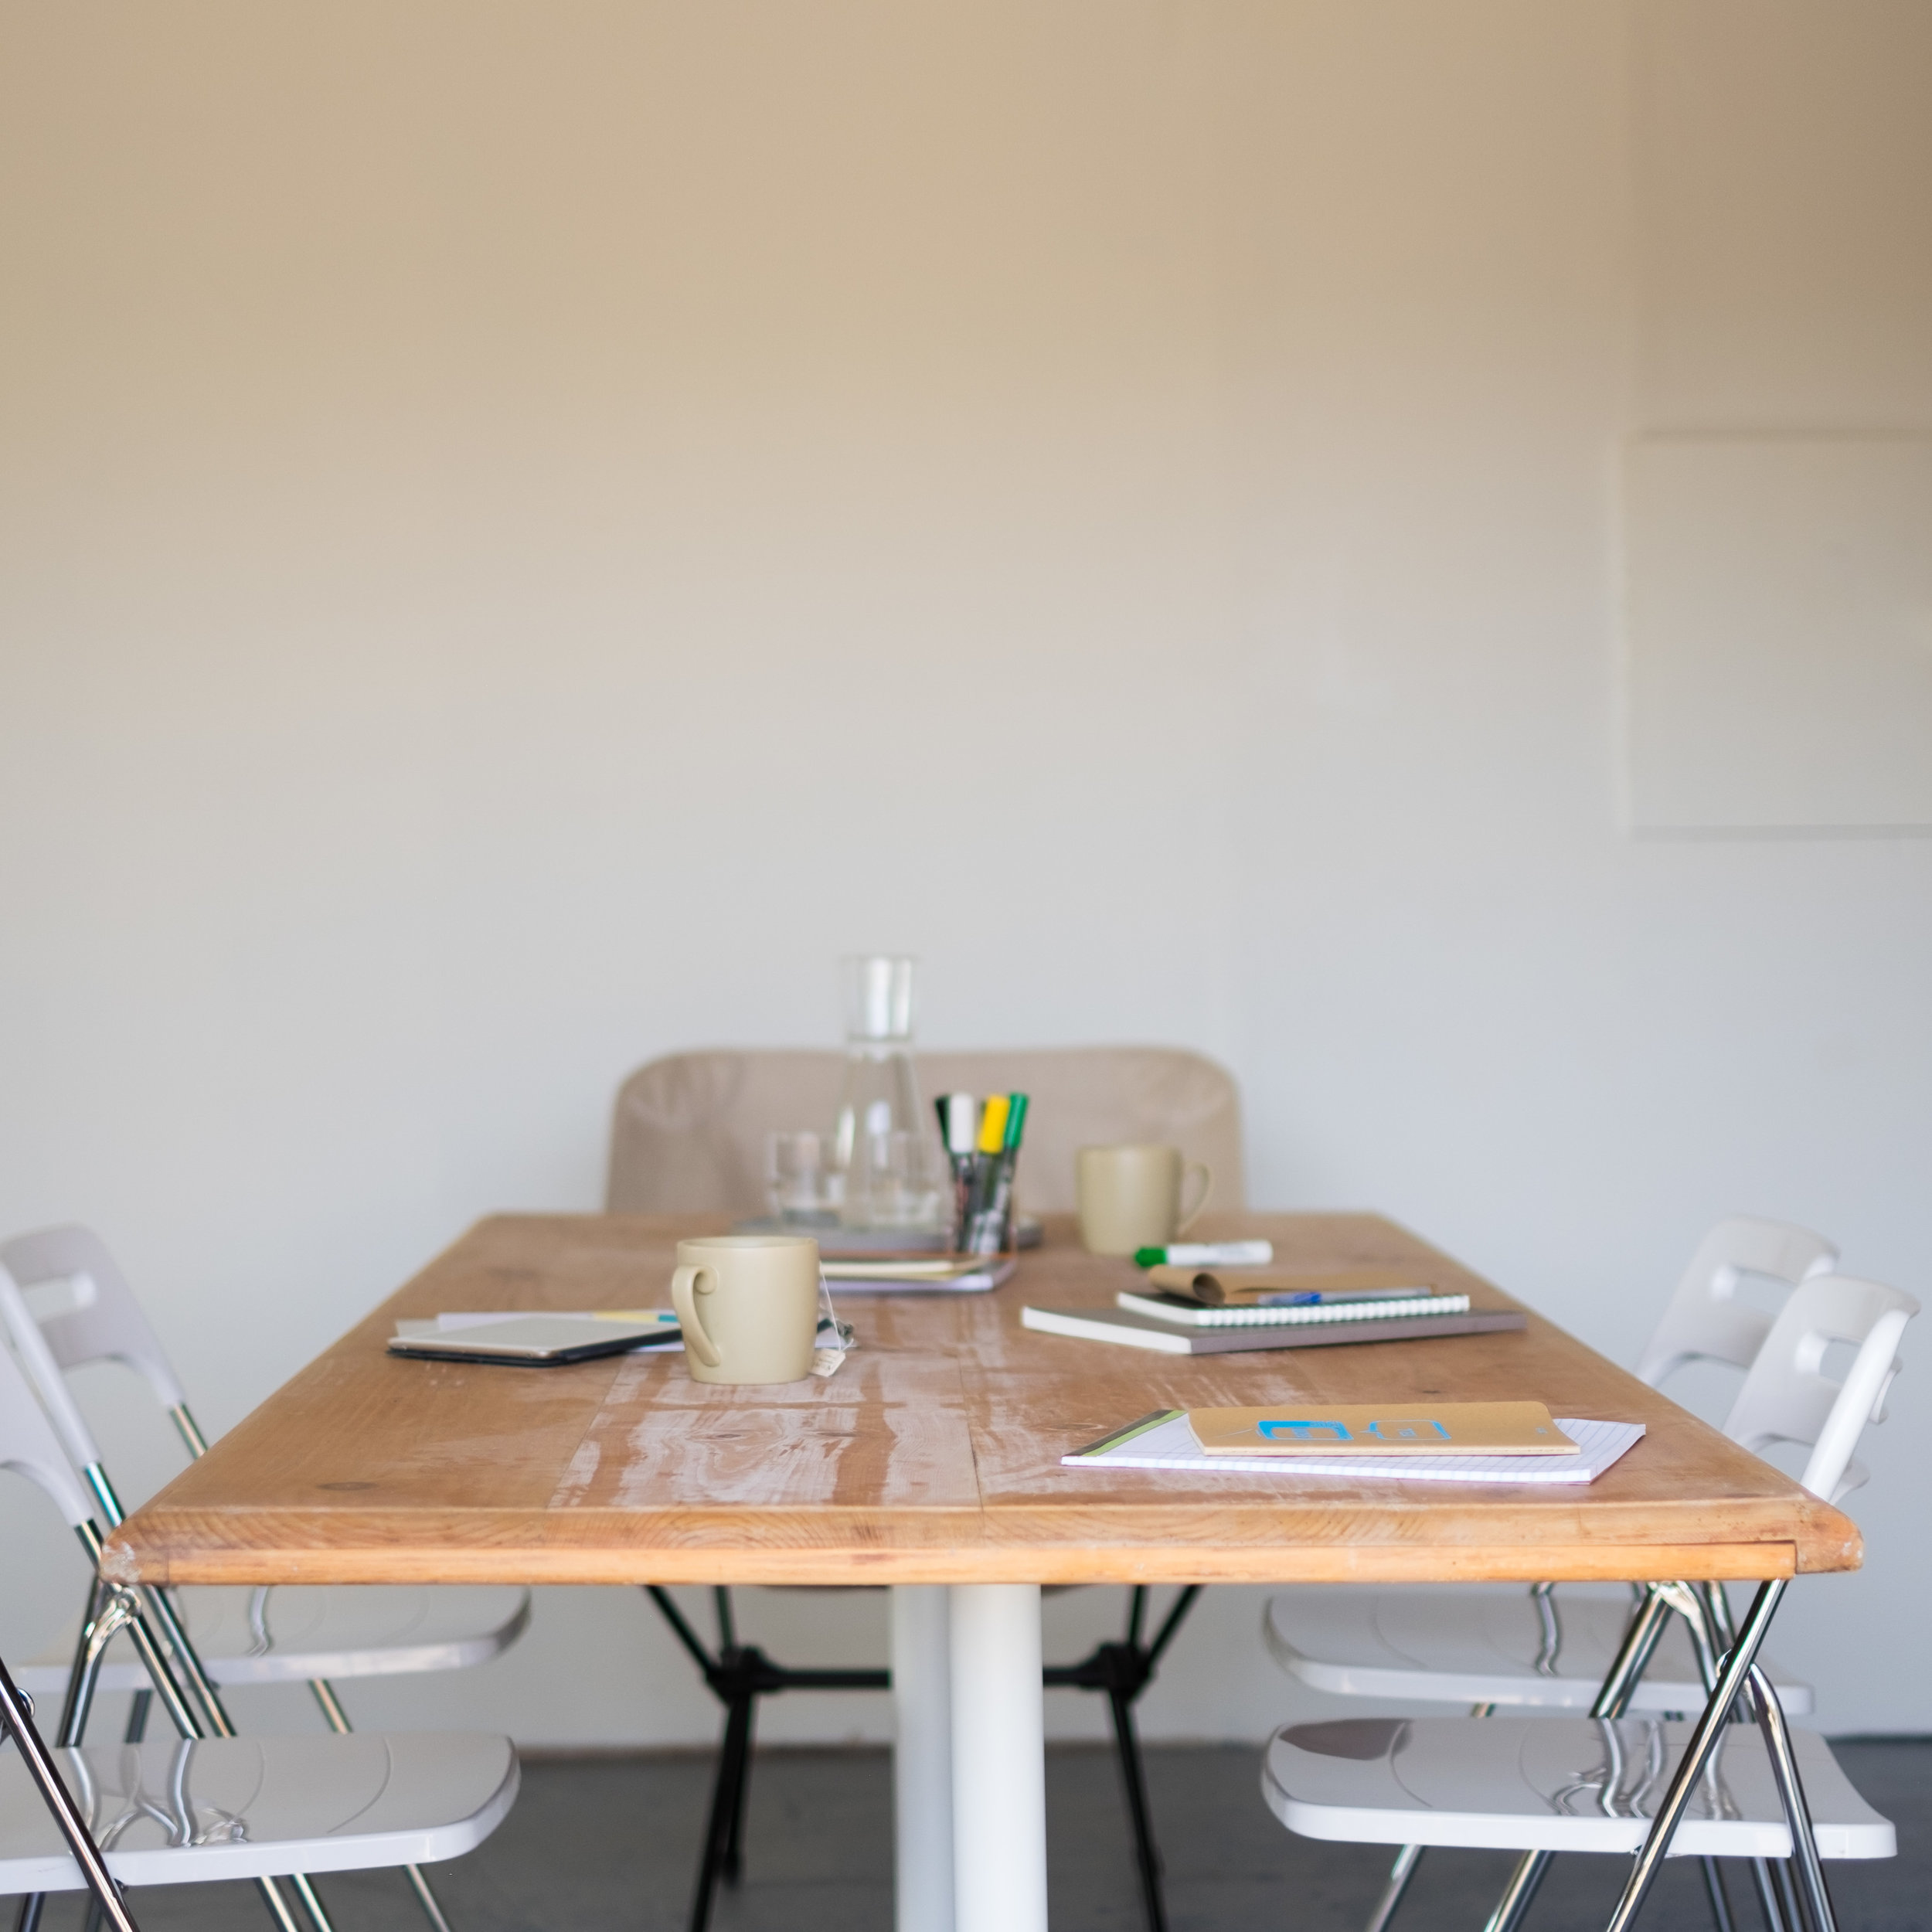 Meeting Space - Get away from distractions and host your next brainstorming session, kickoff meeting or strategy think tank at Offsite. We have a conference table, chairs, huge white board, A/V gear and can arrange all the food + comforts you'll need.